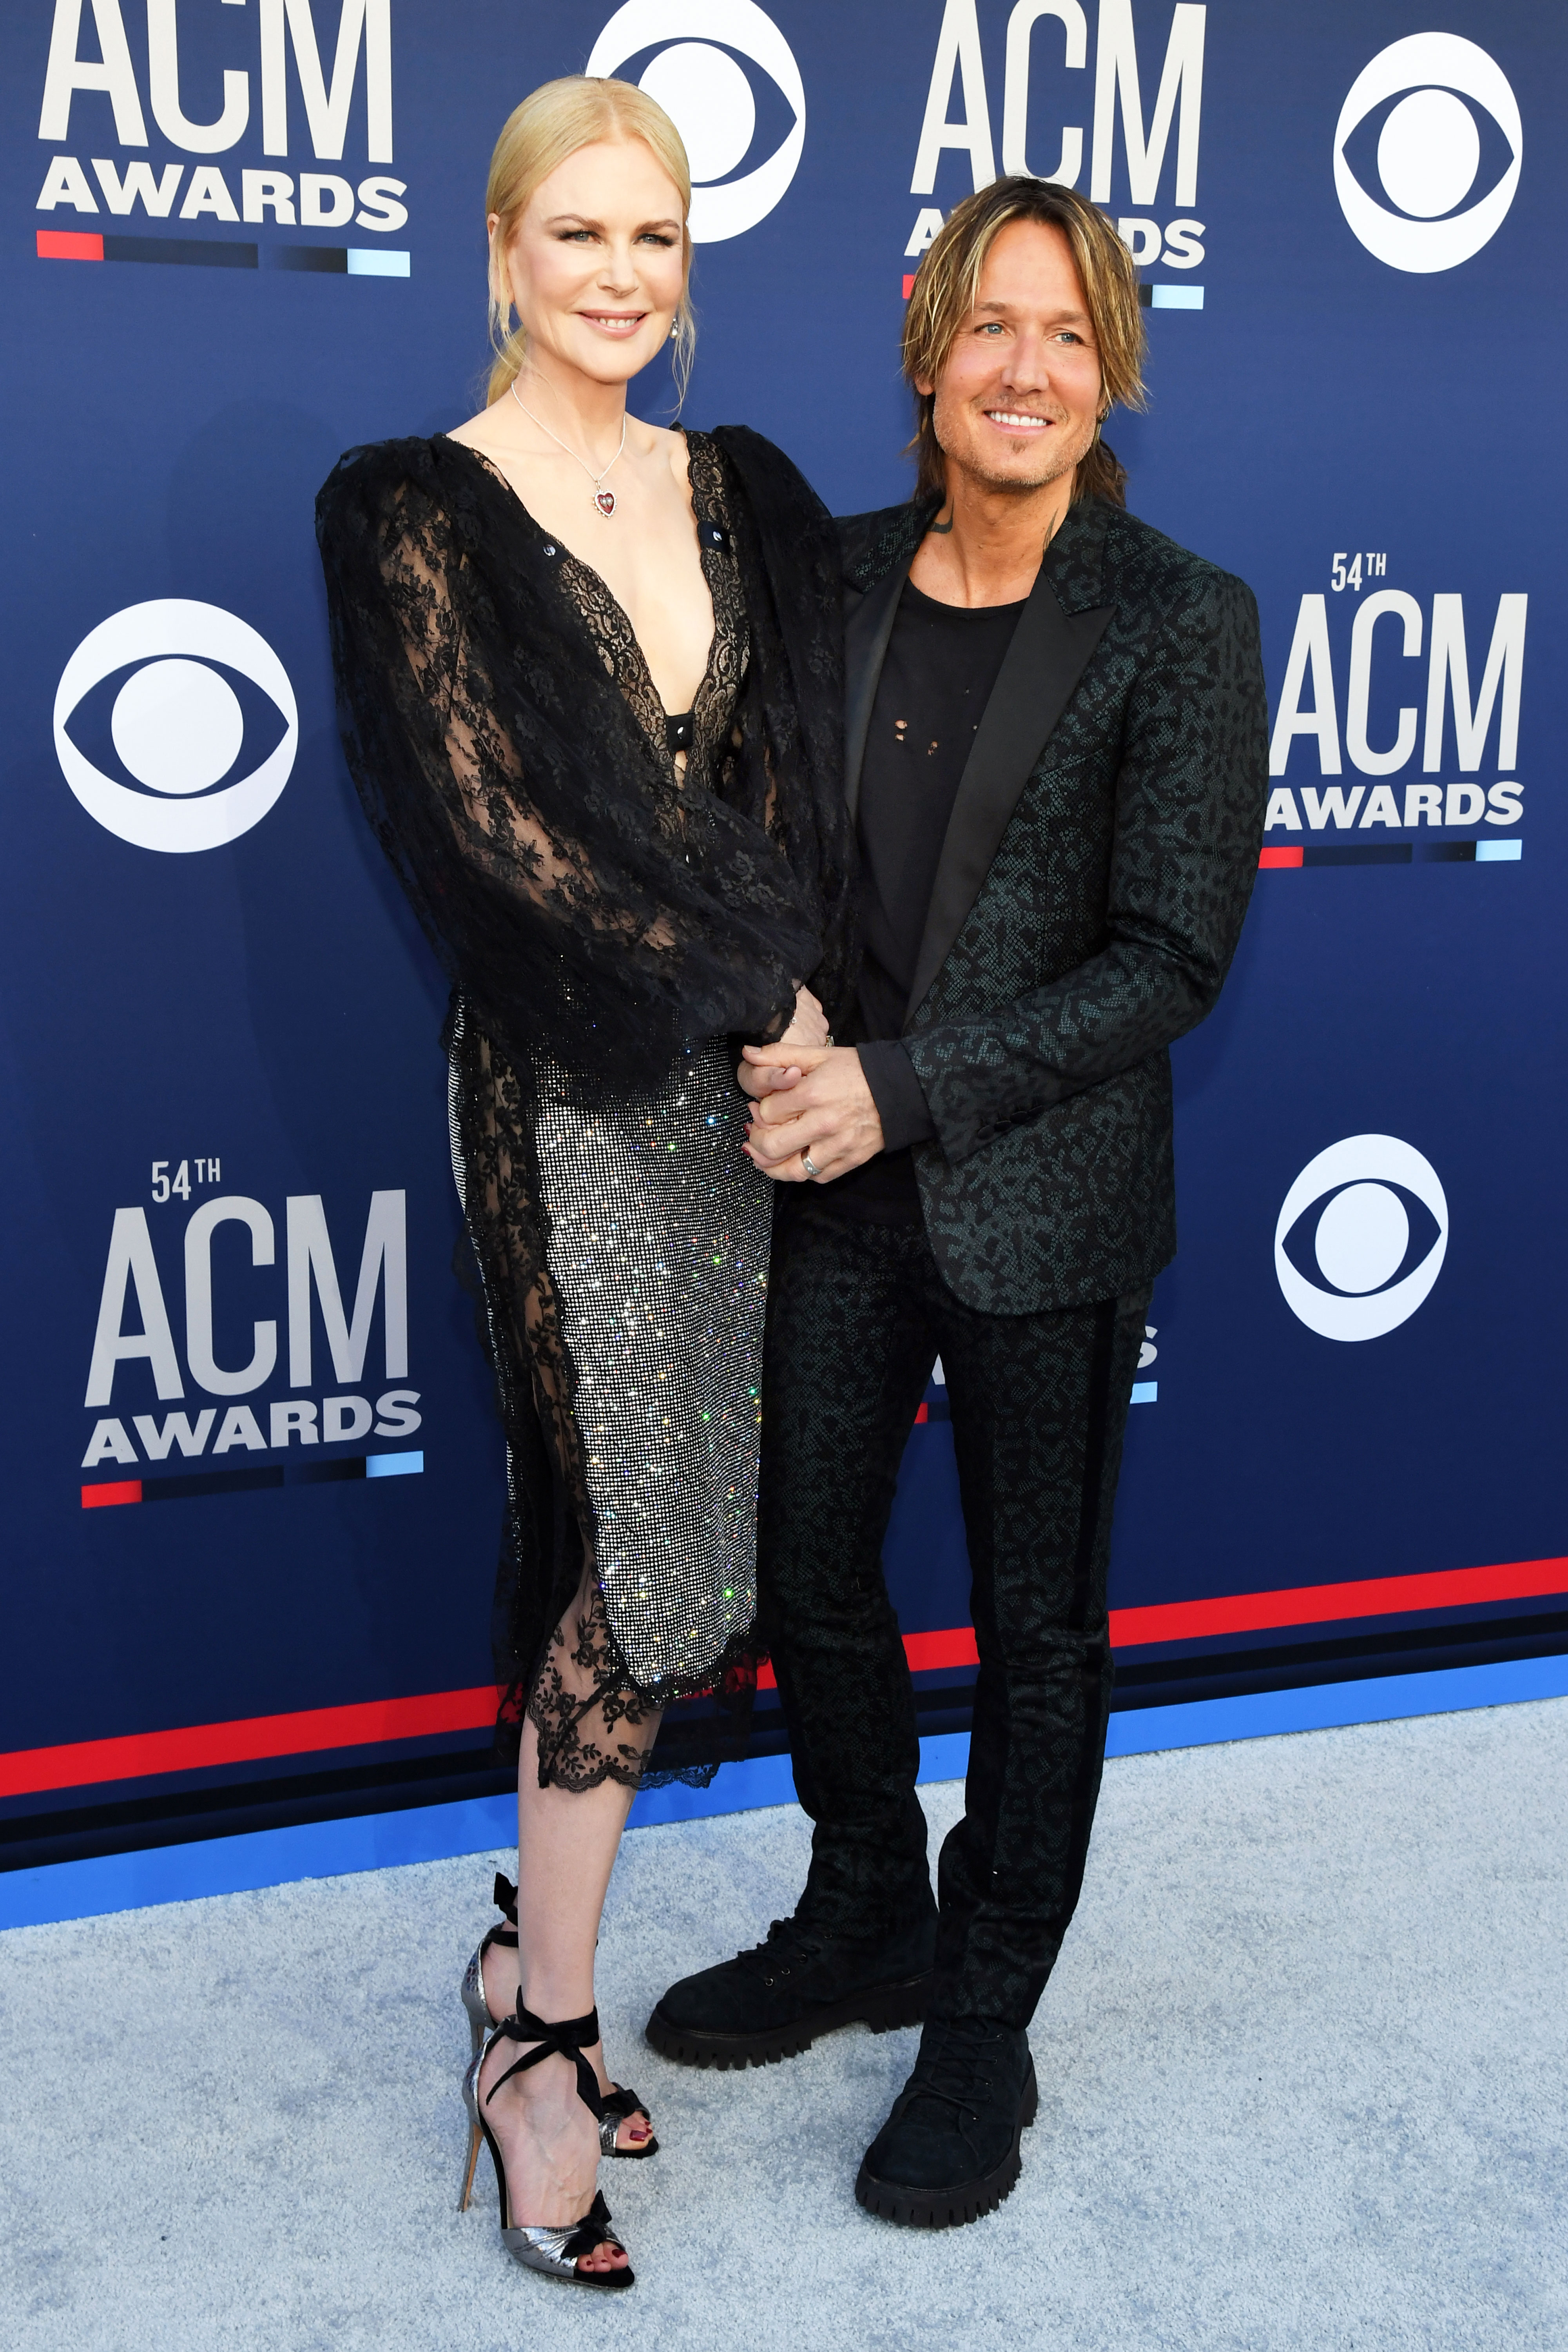 Nicole Kidman and Keith Urban Smoking Hot Couples Style at the ACMs - The ever-stylish couple were color coordinated in black, with the Big Little Lies star dazzling in a lacy Christopher Kane midi and her hubby rocking a printed suit jacket.